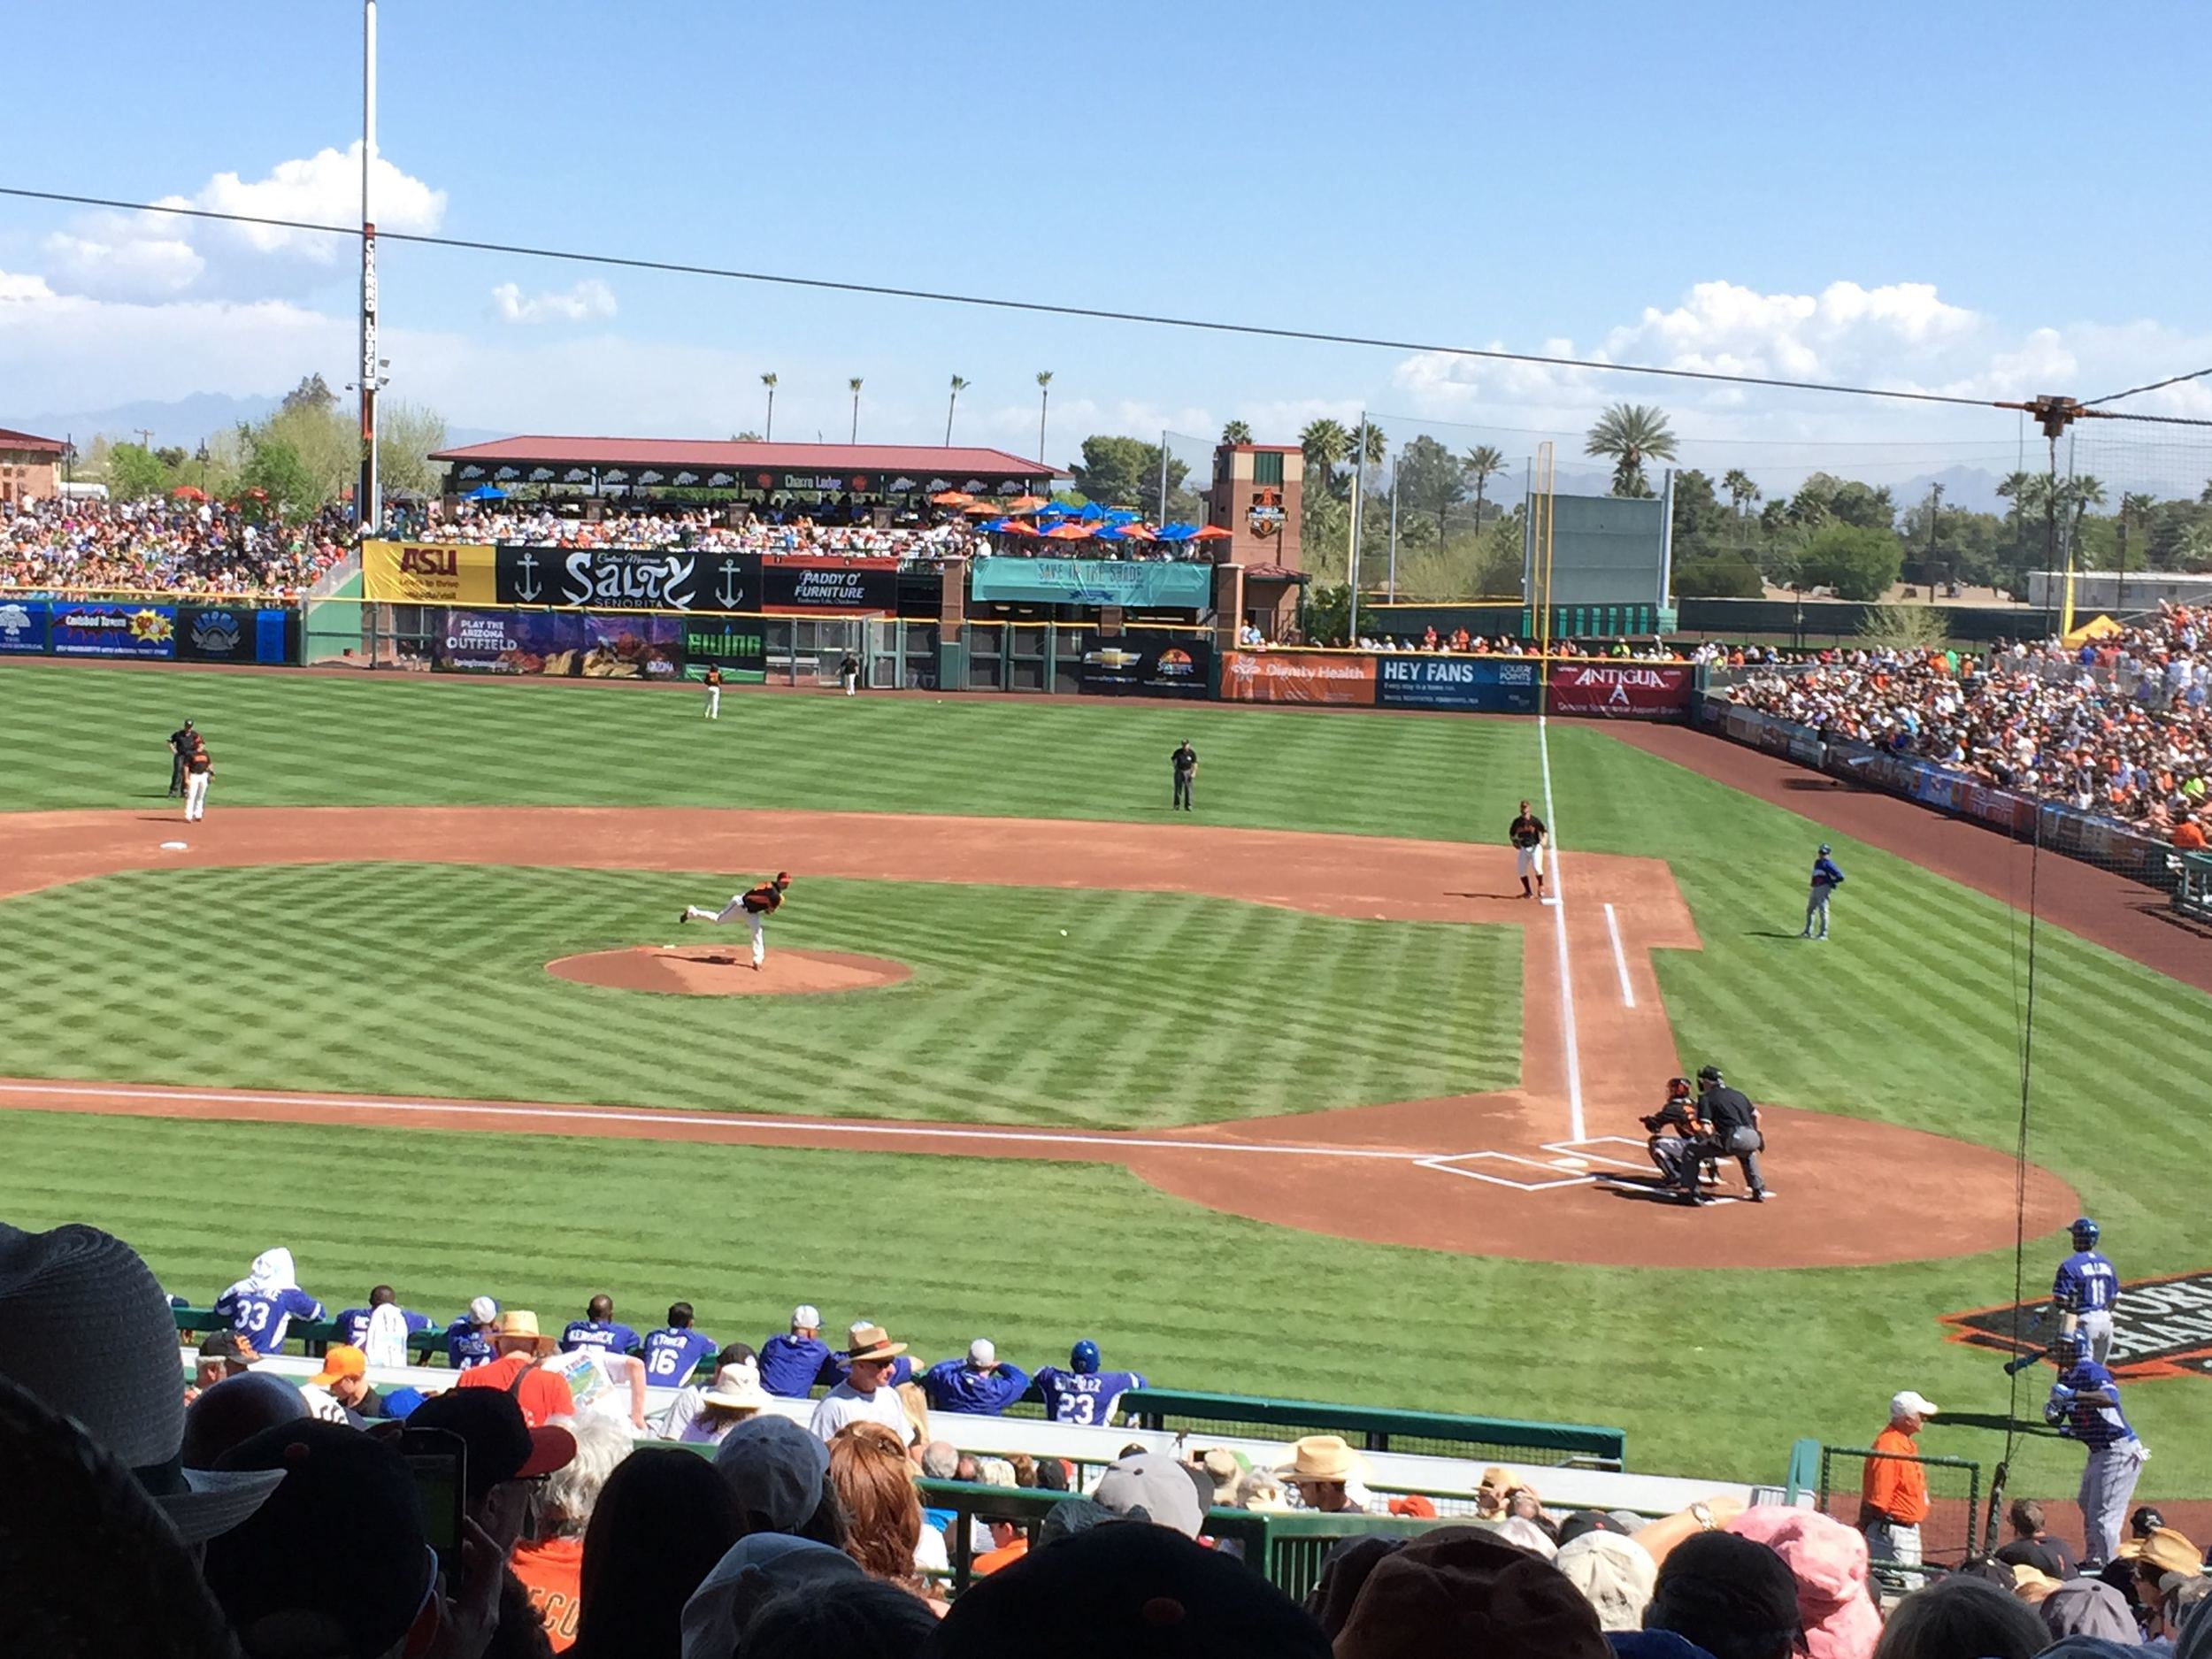 And watching some baseball of course. In this case, Matt Cain looking sharp over two innings in his first spring training game.